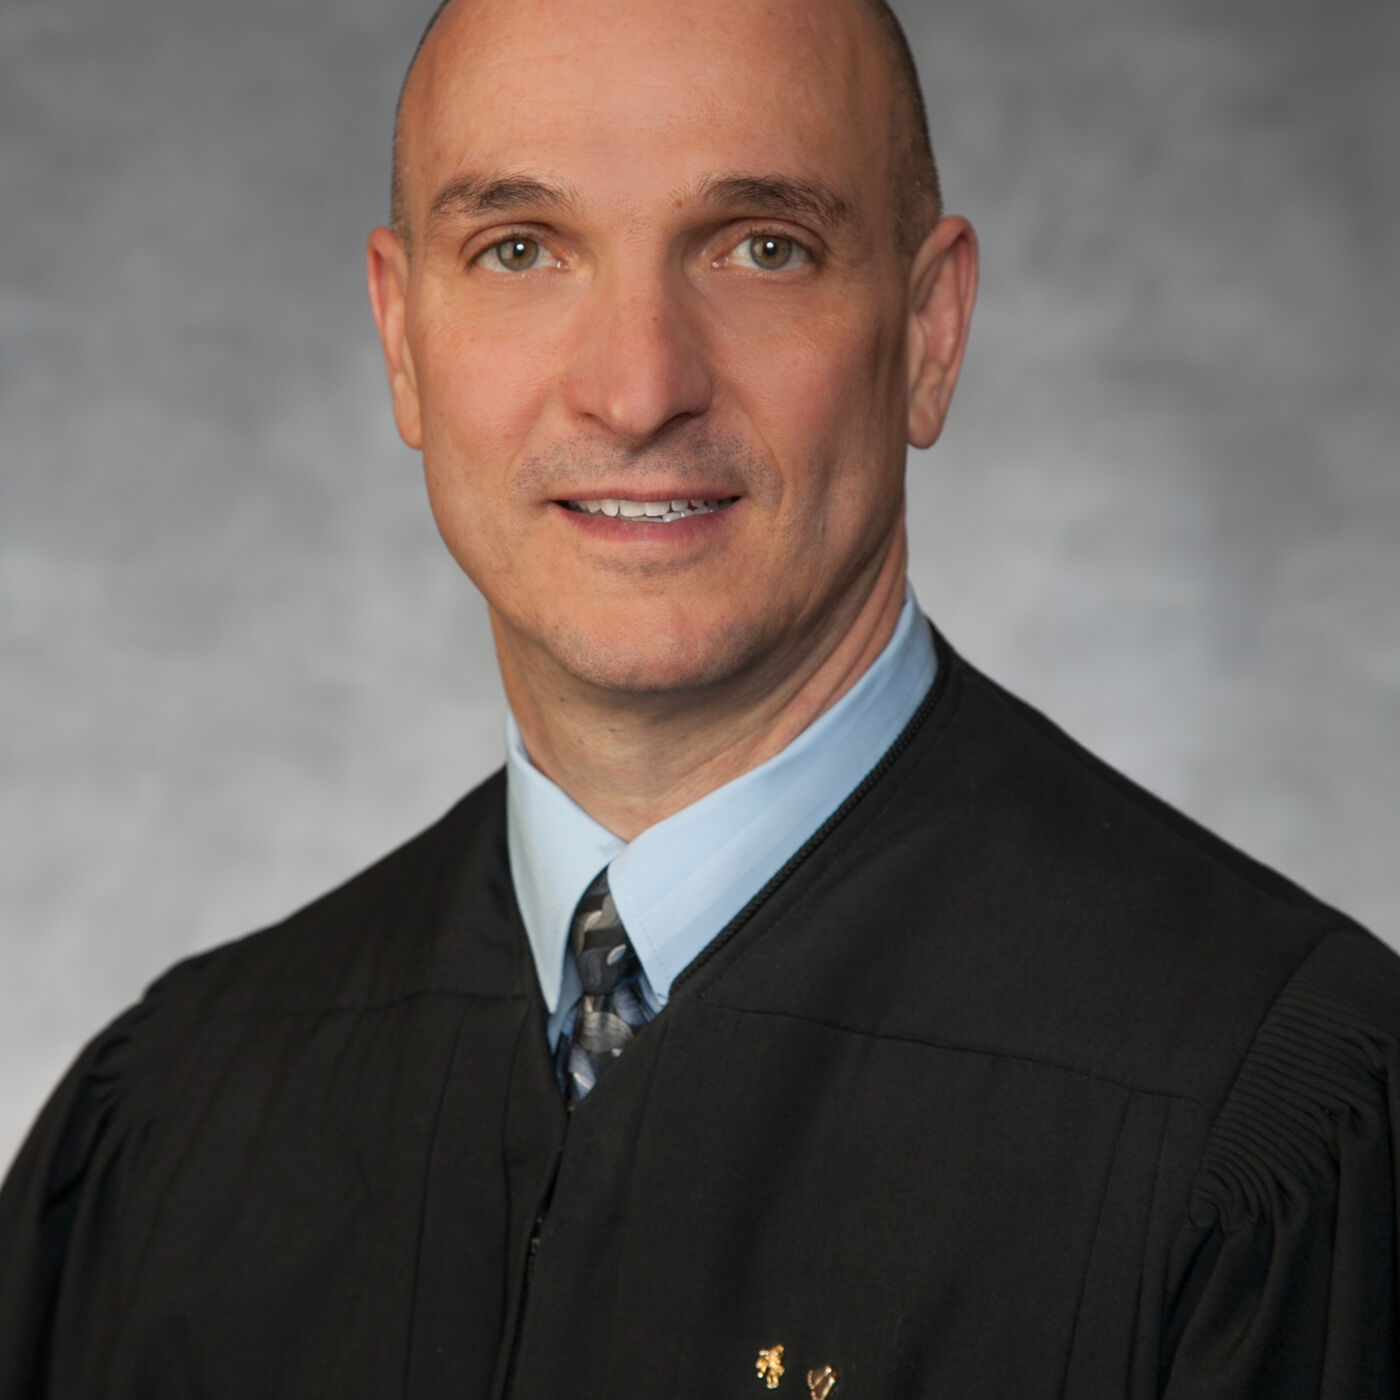 Judge John J. Russo Ends Term As Administrative Judge